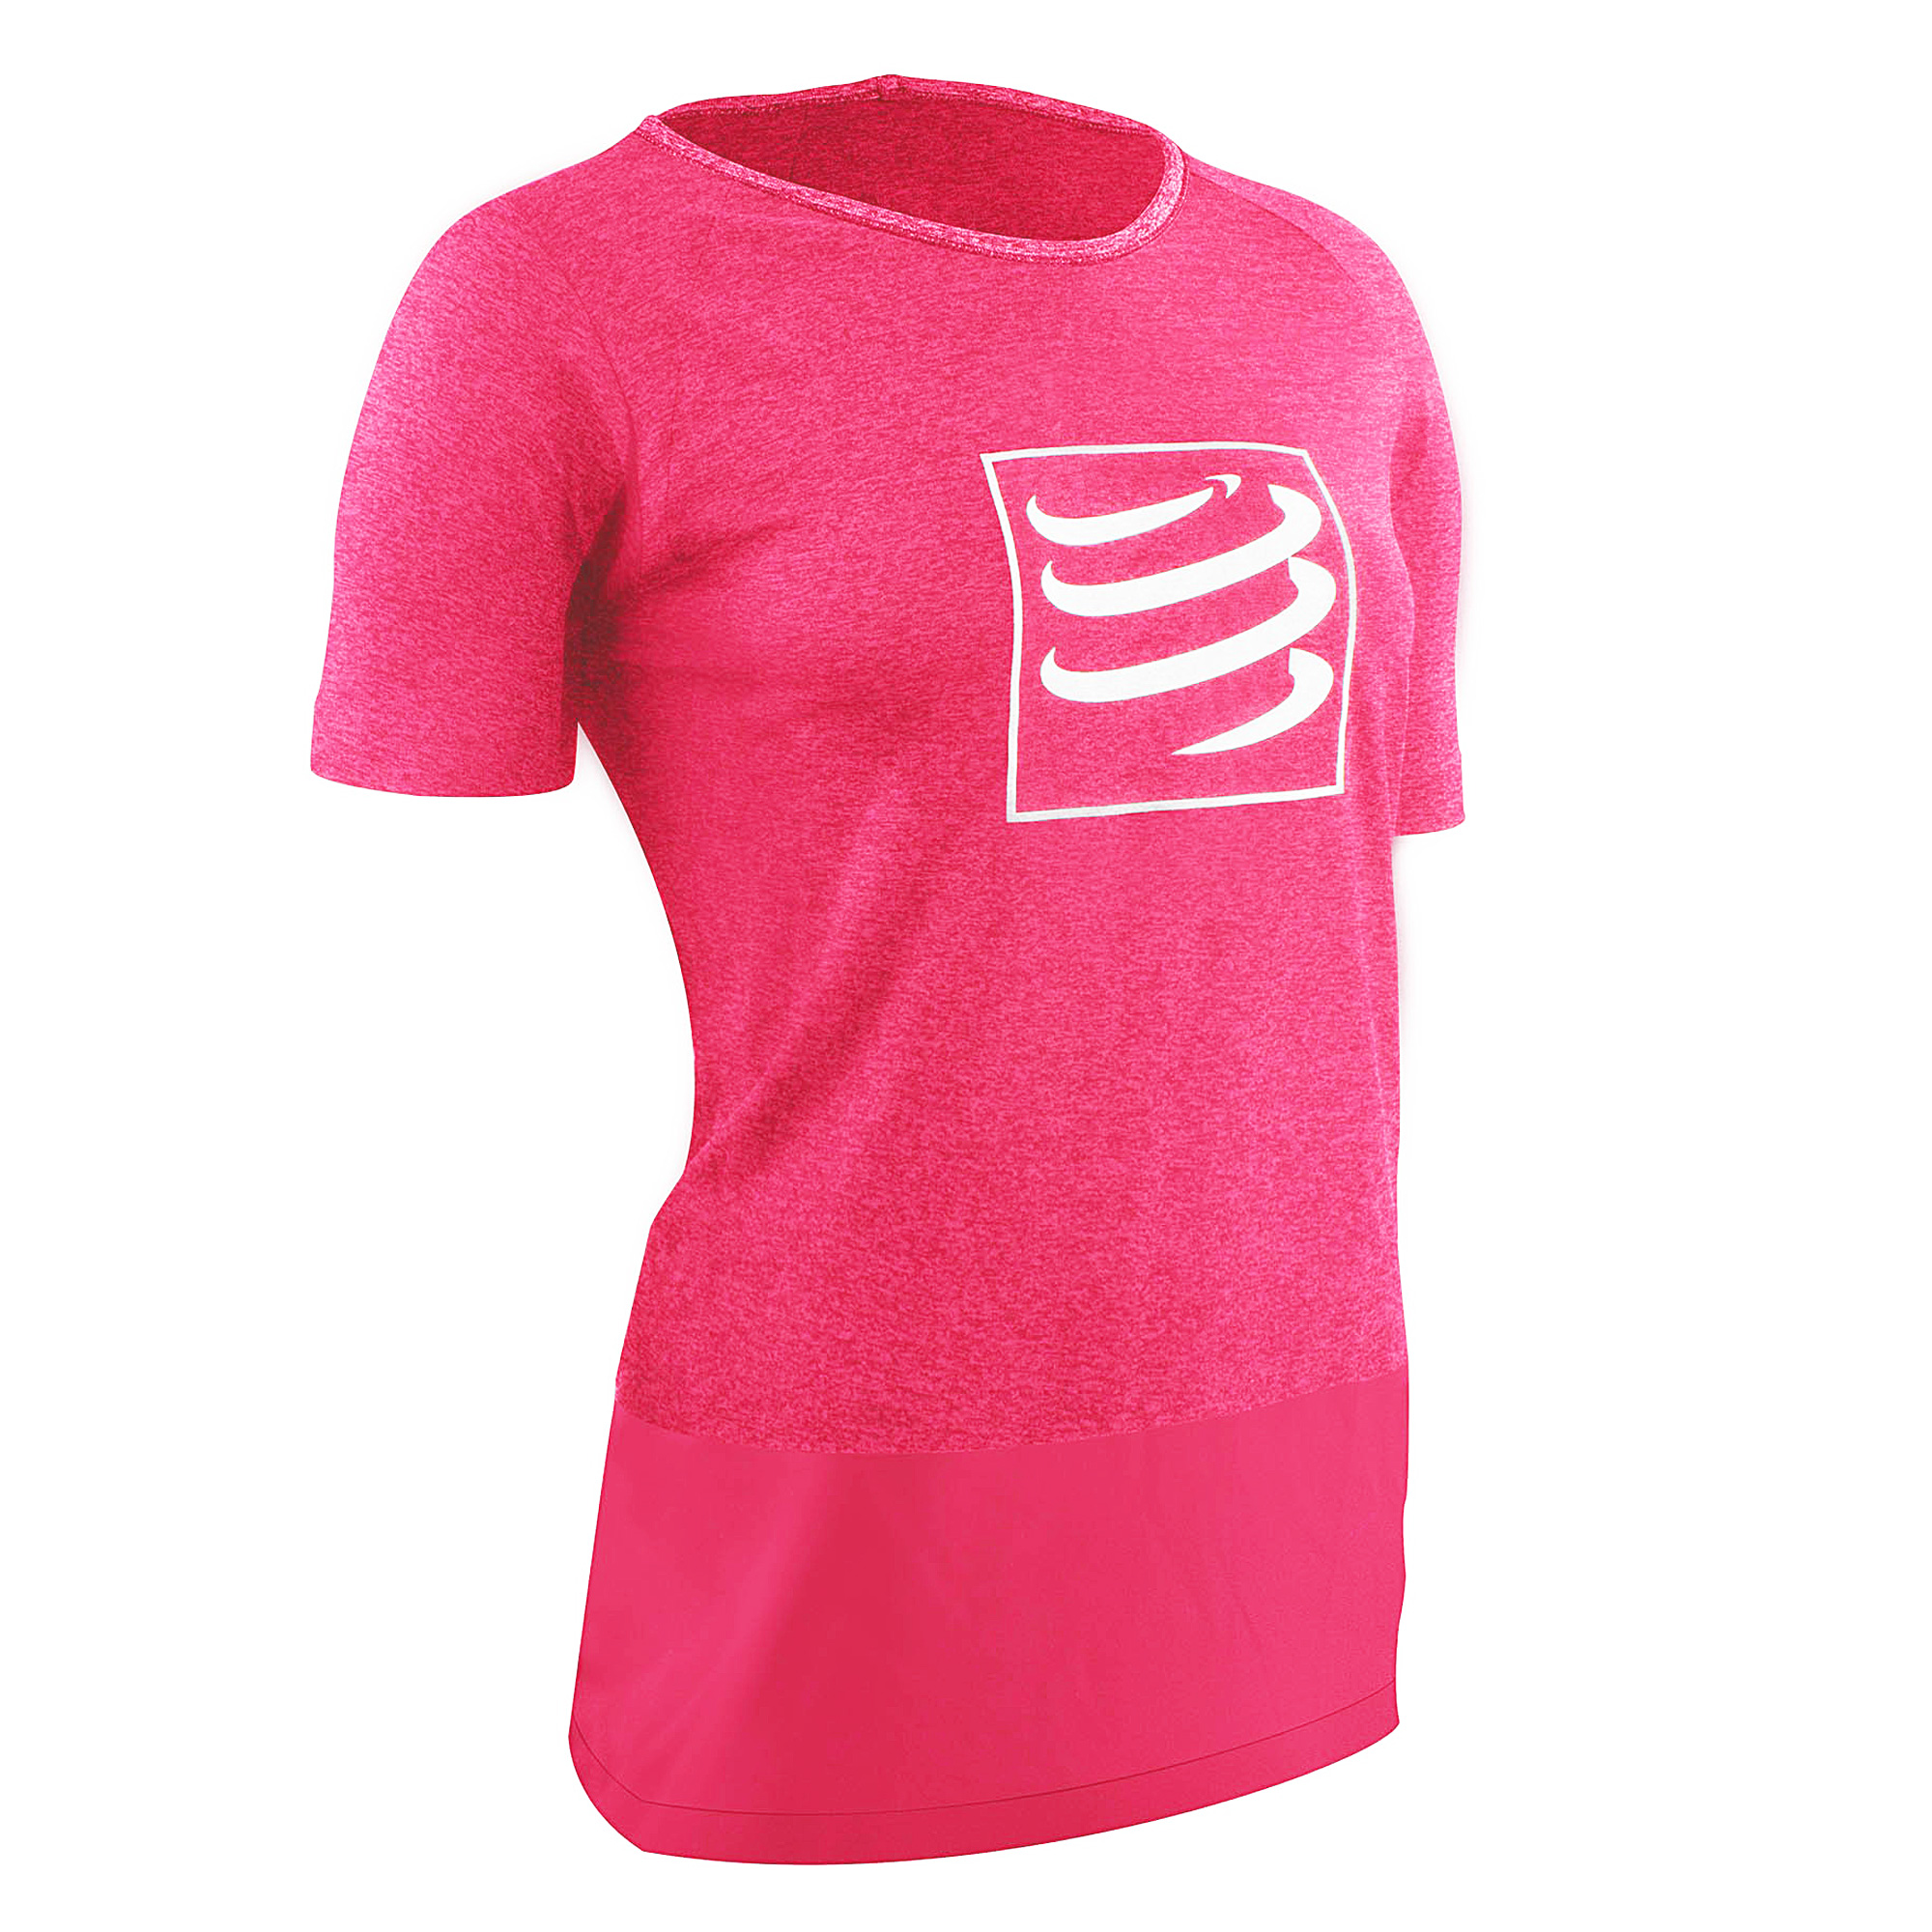 Koszulka treningowa COMPRESSPORT Training TShirt L